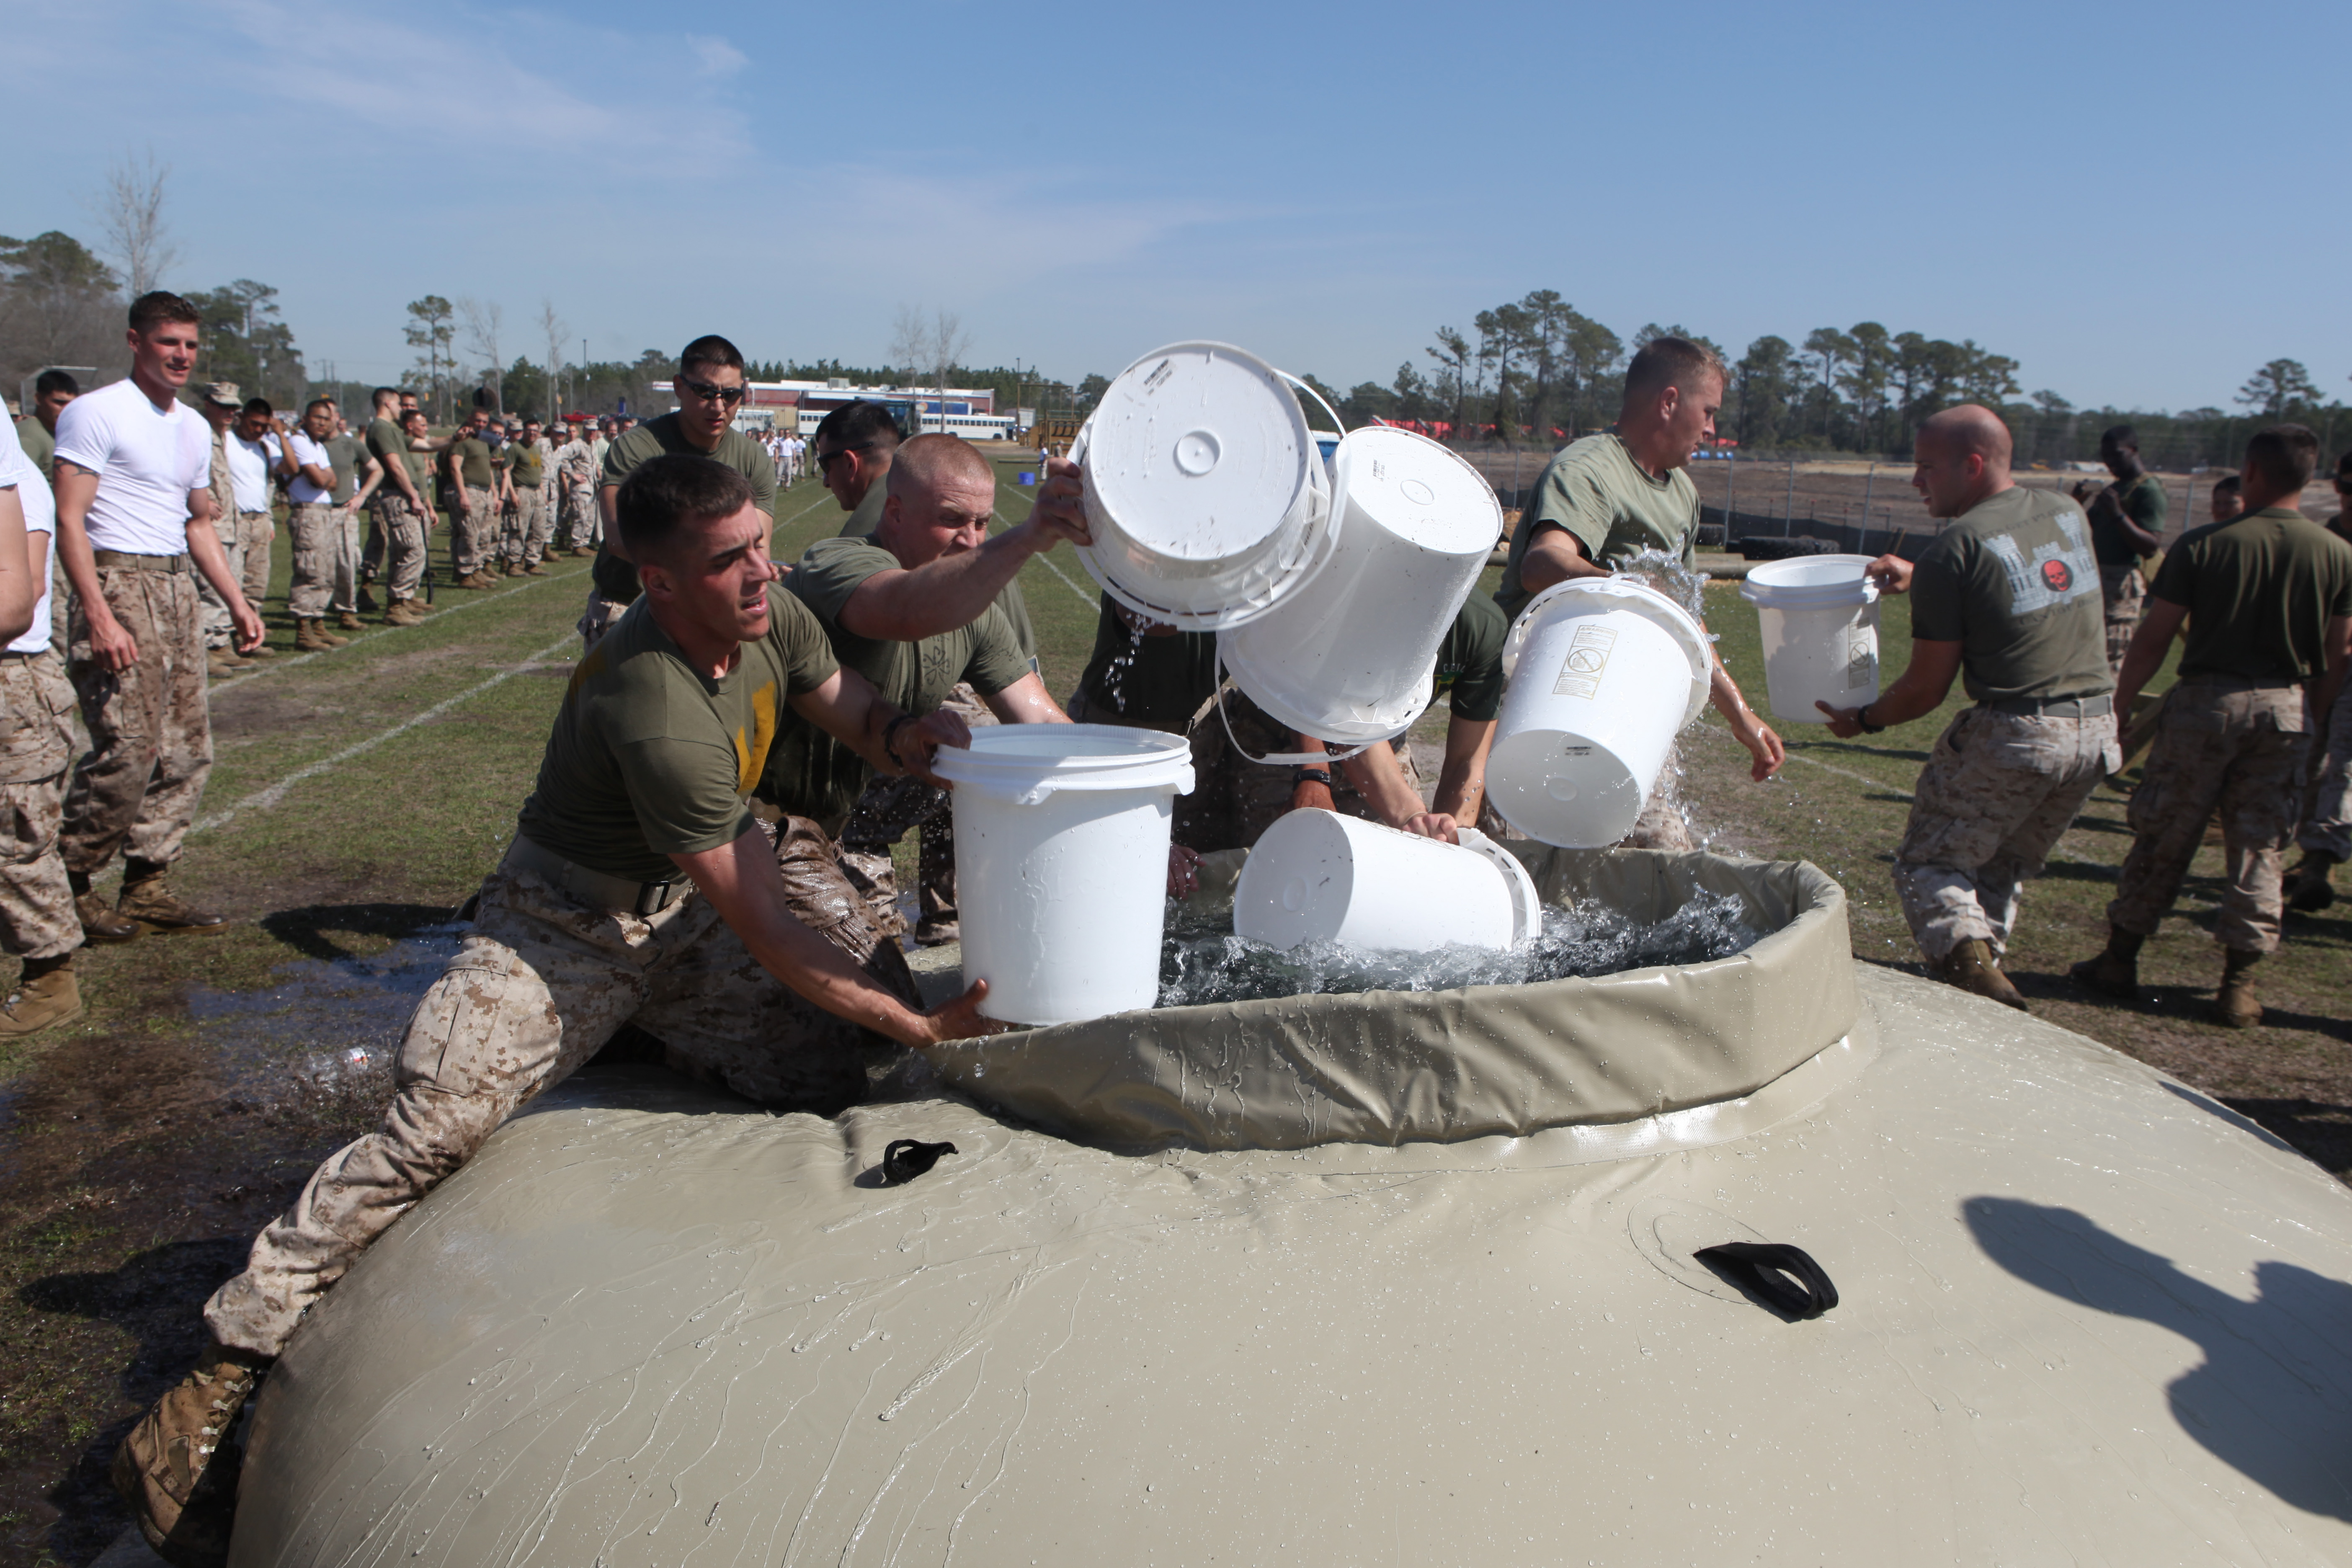 df3f10aa0 Download Hi-Res Photo Download Share Photo Details Details. Marines take a  few moments to rest during the annual Saint Patrick's Day ...